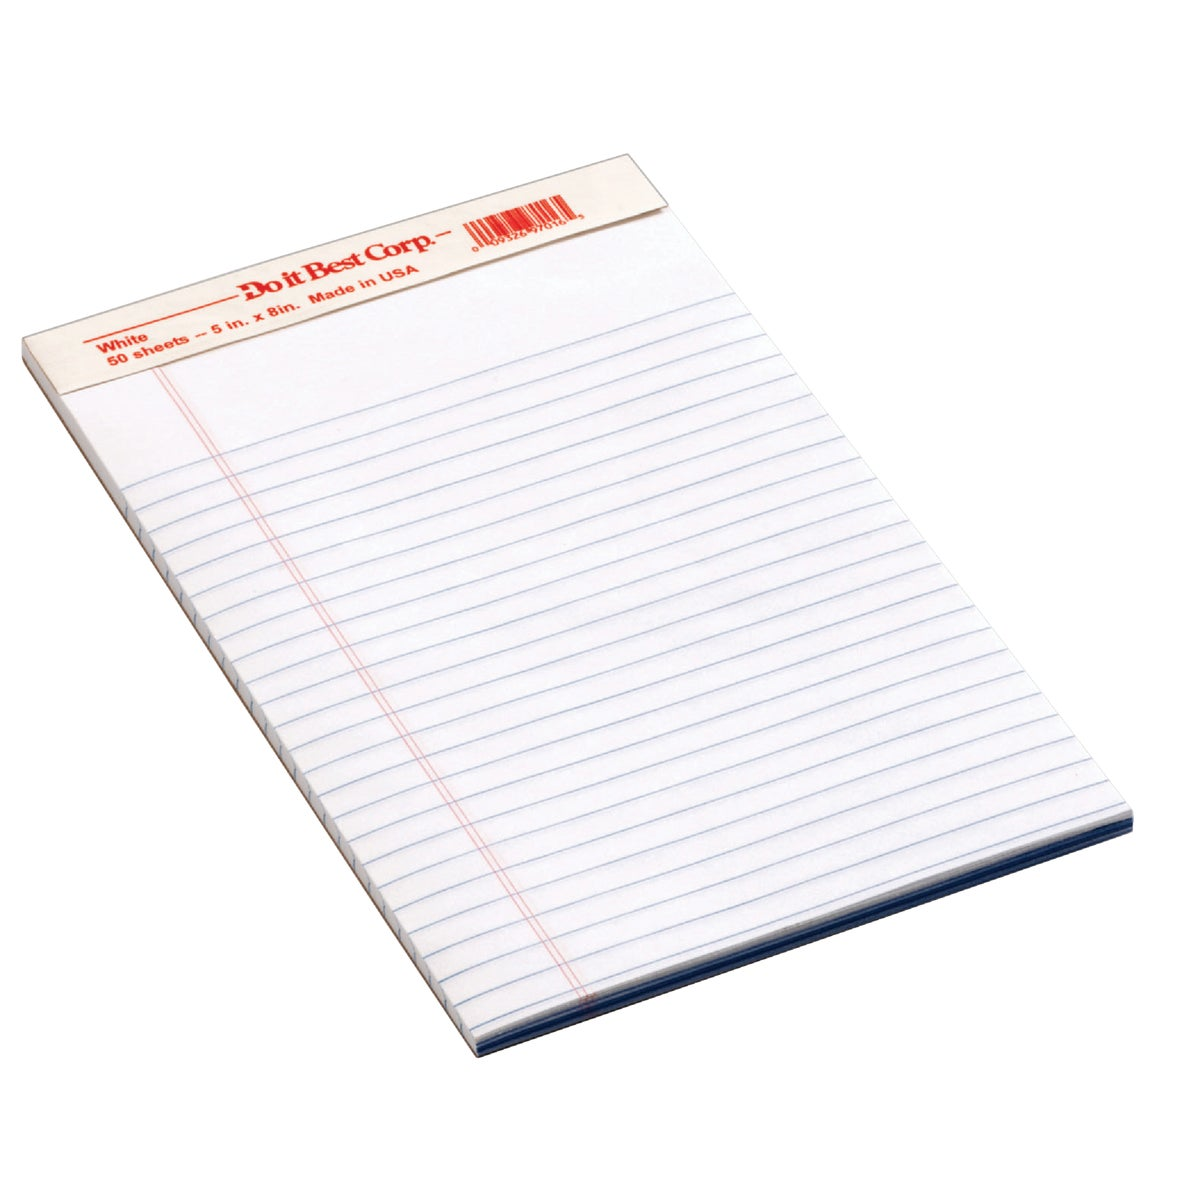 12 5X8 WHT LEGAL PAD - 683241 by Staples